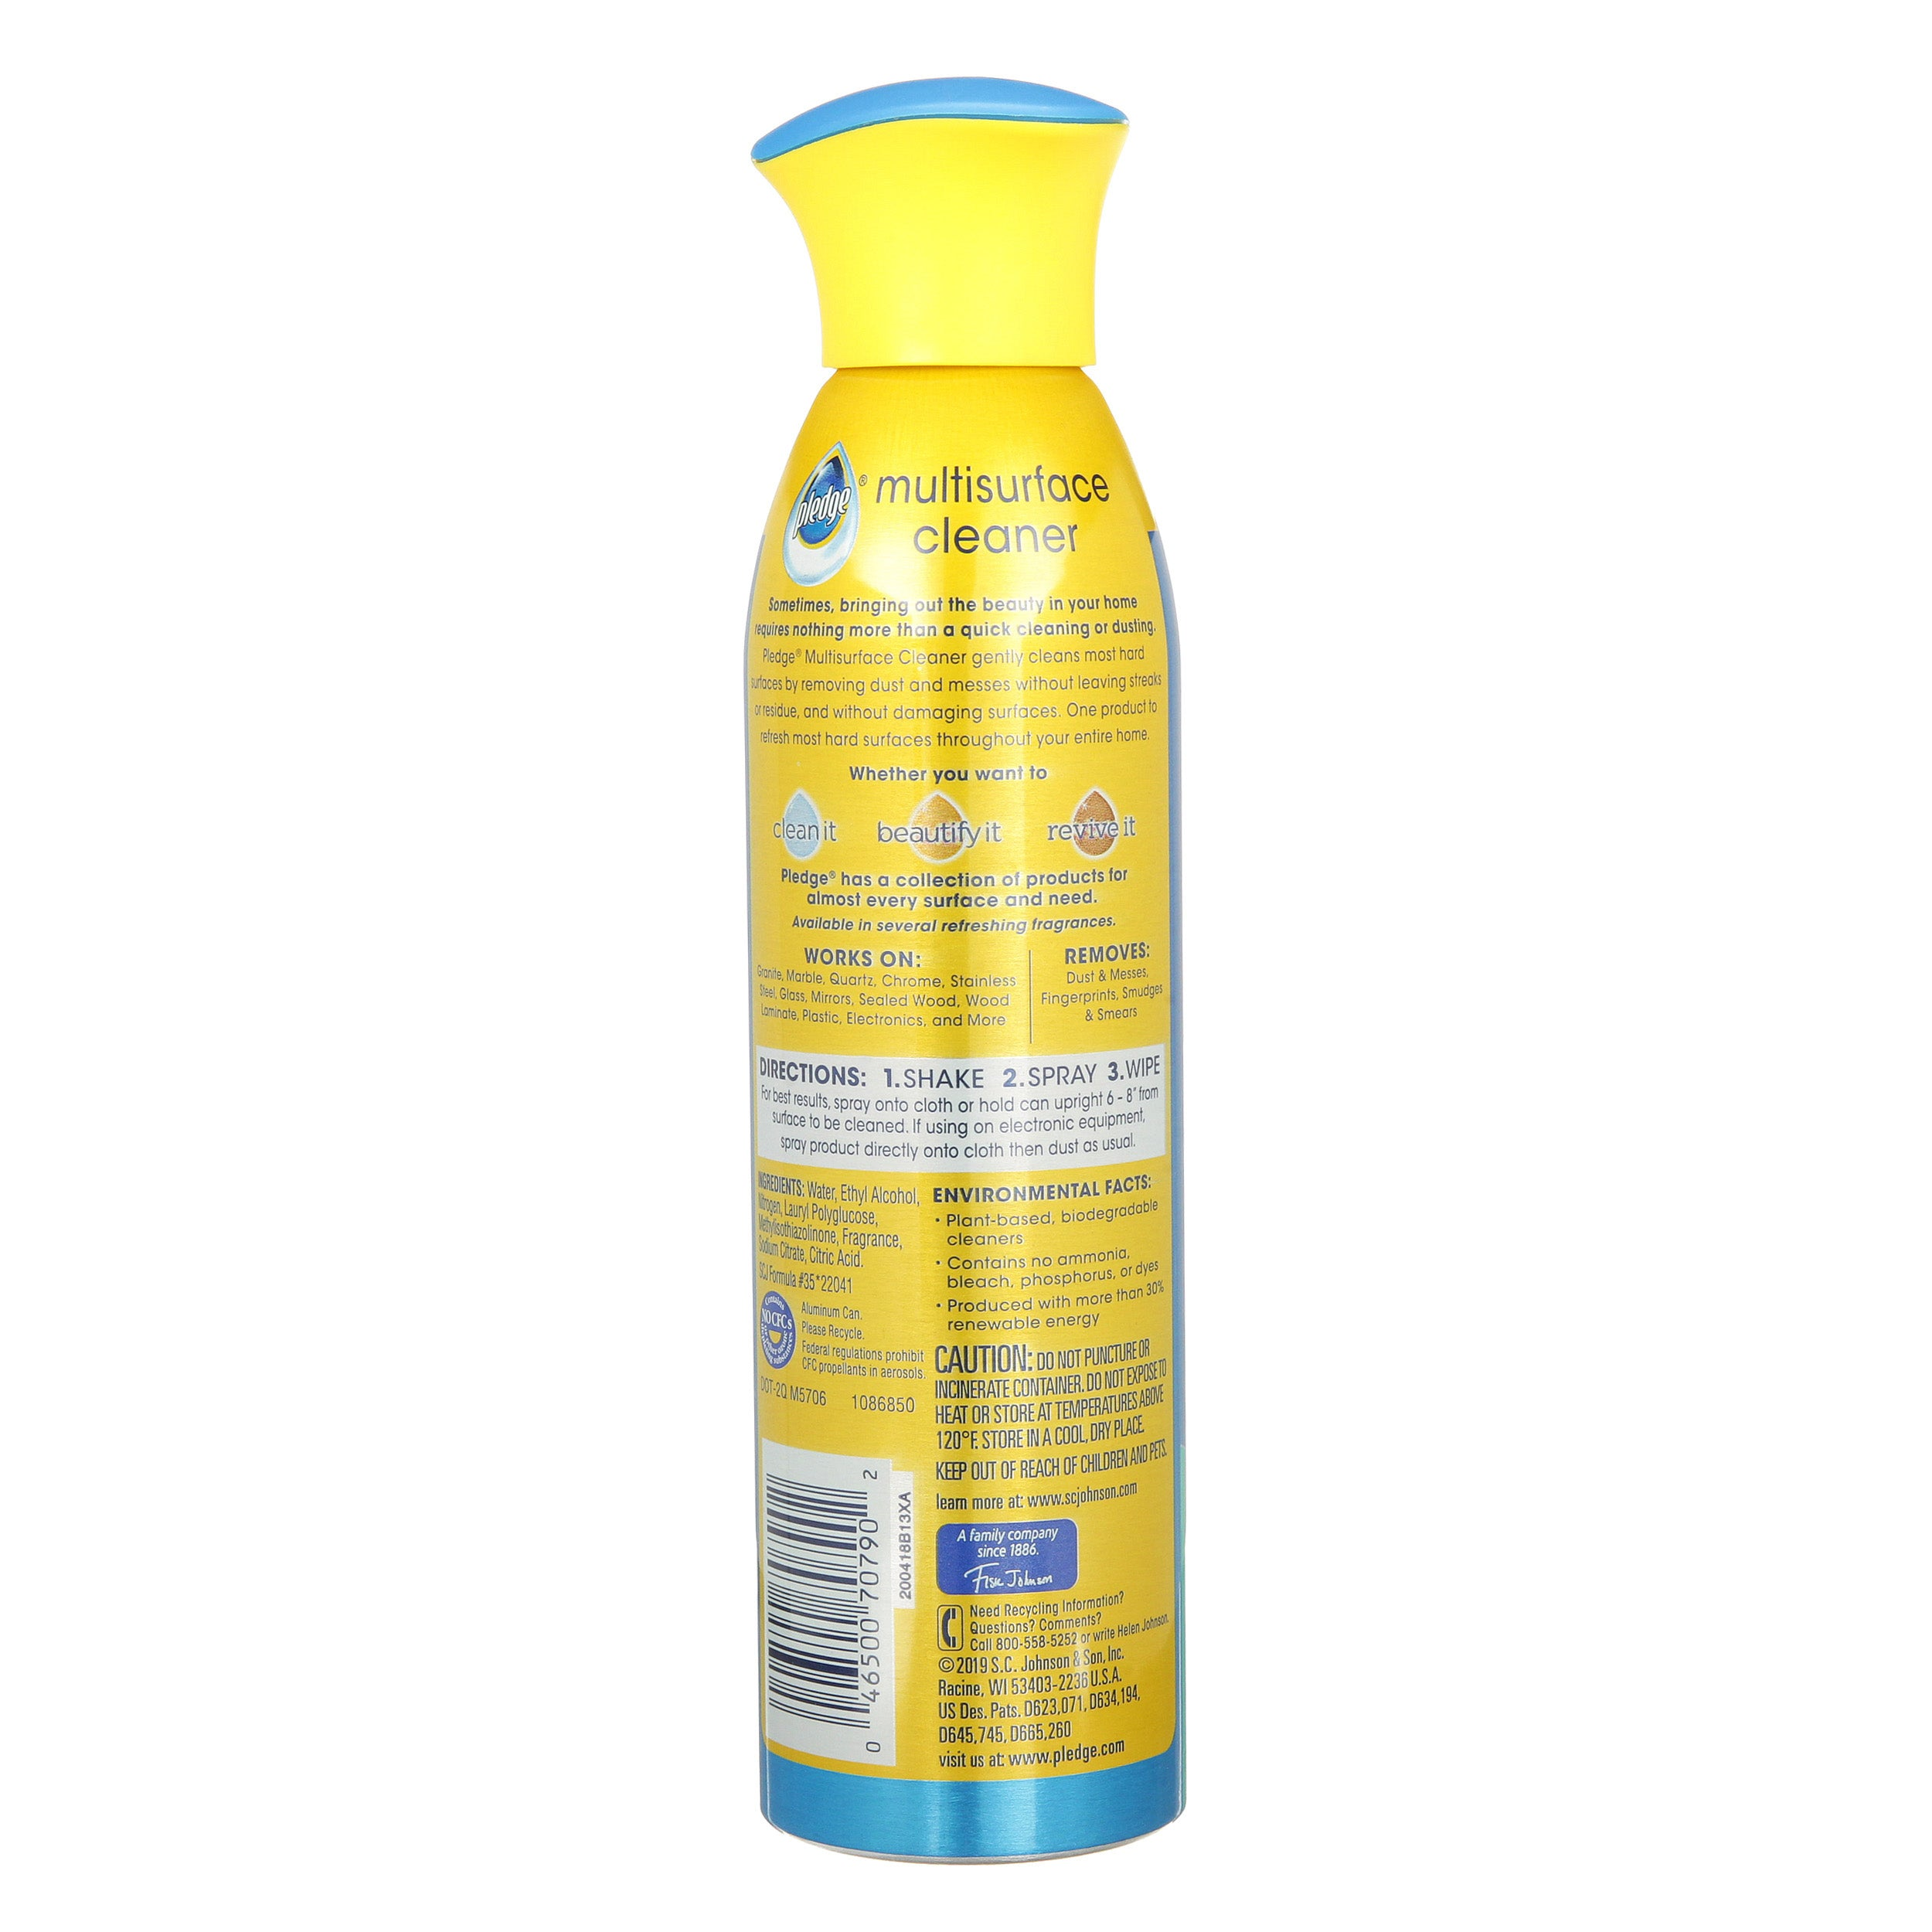 Pledge Multisurface Cleaner Aerosol, Rainshower, 9.7 oz - FLJ CORPORATIONS